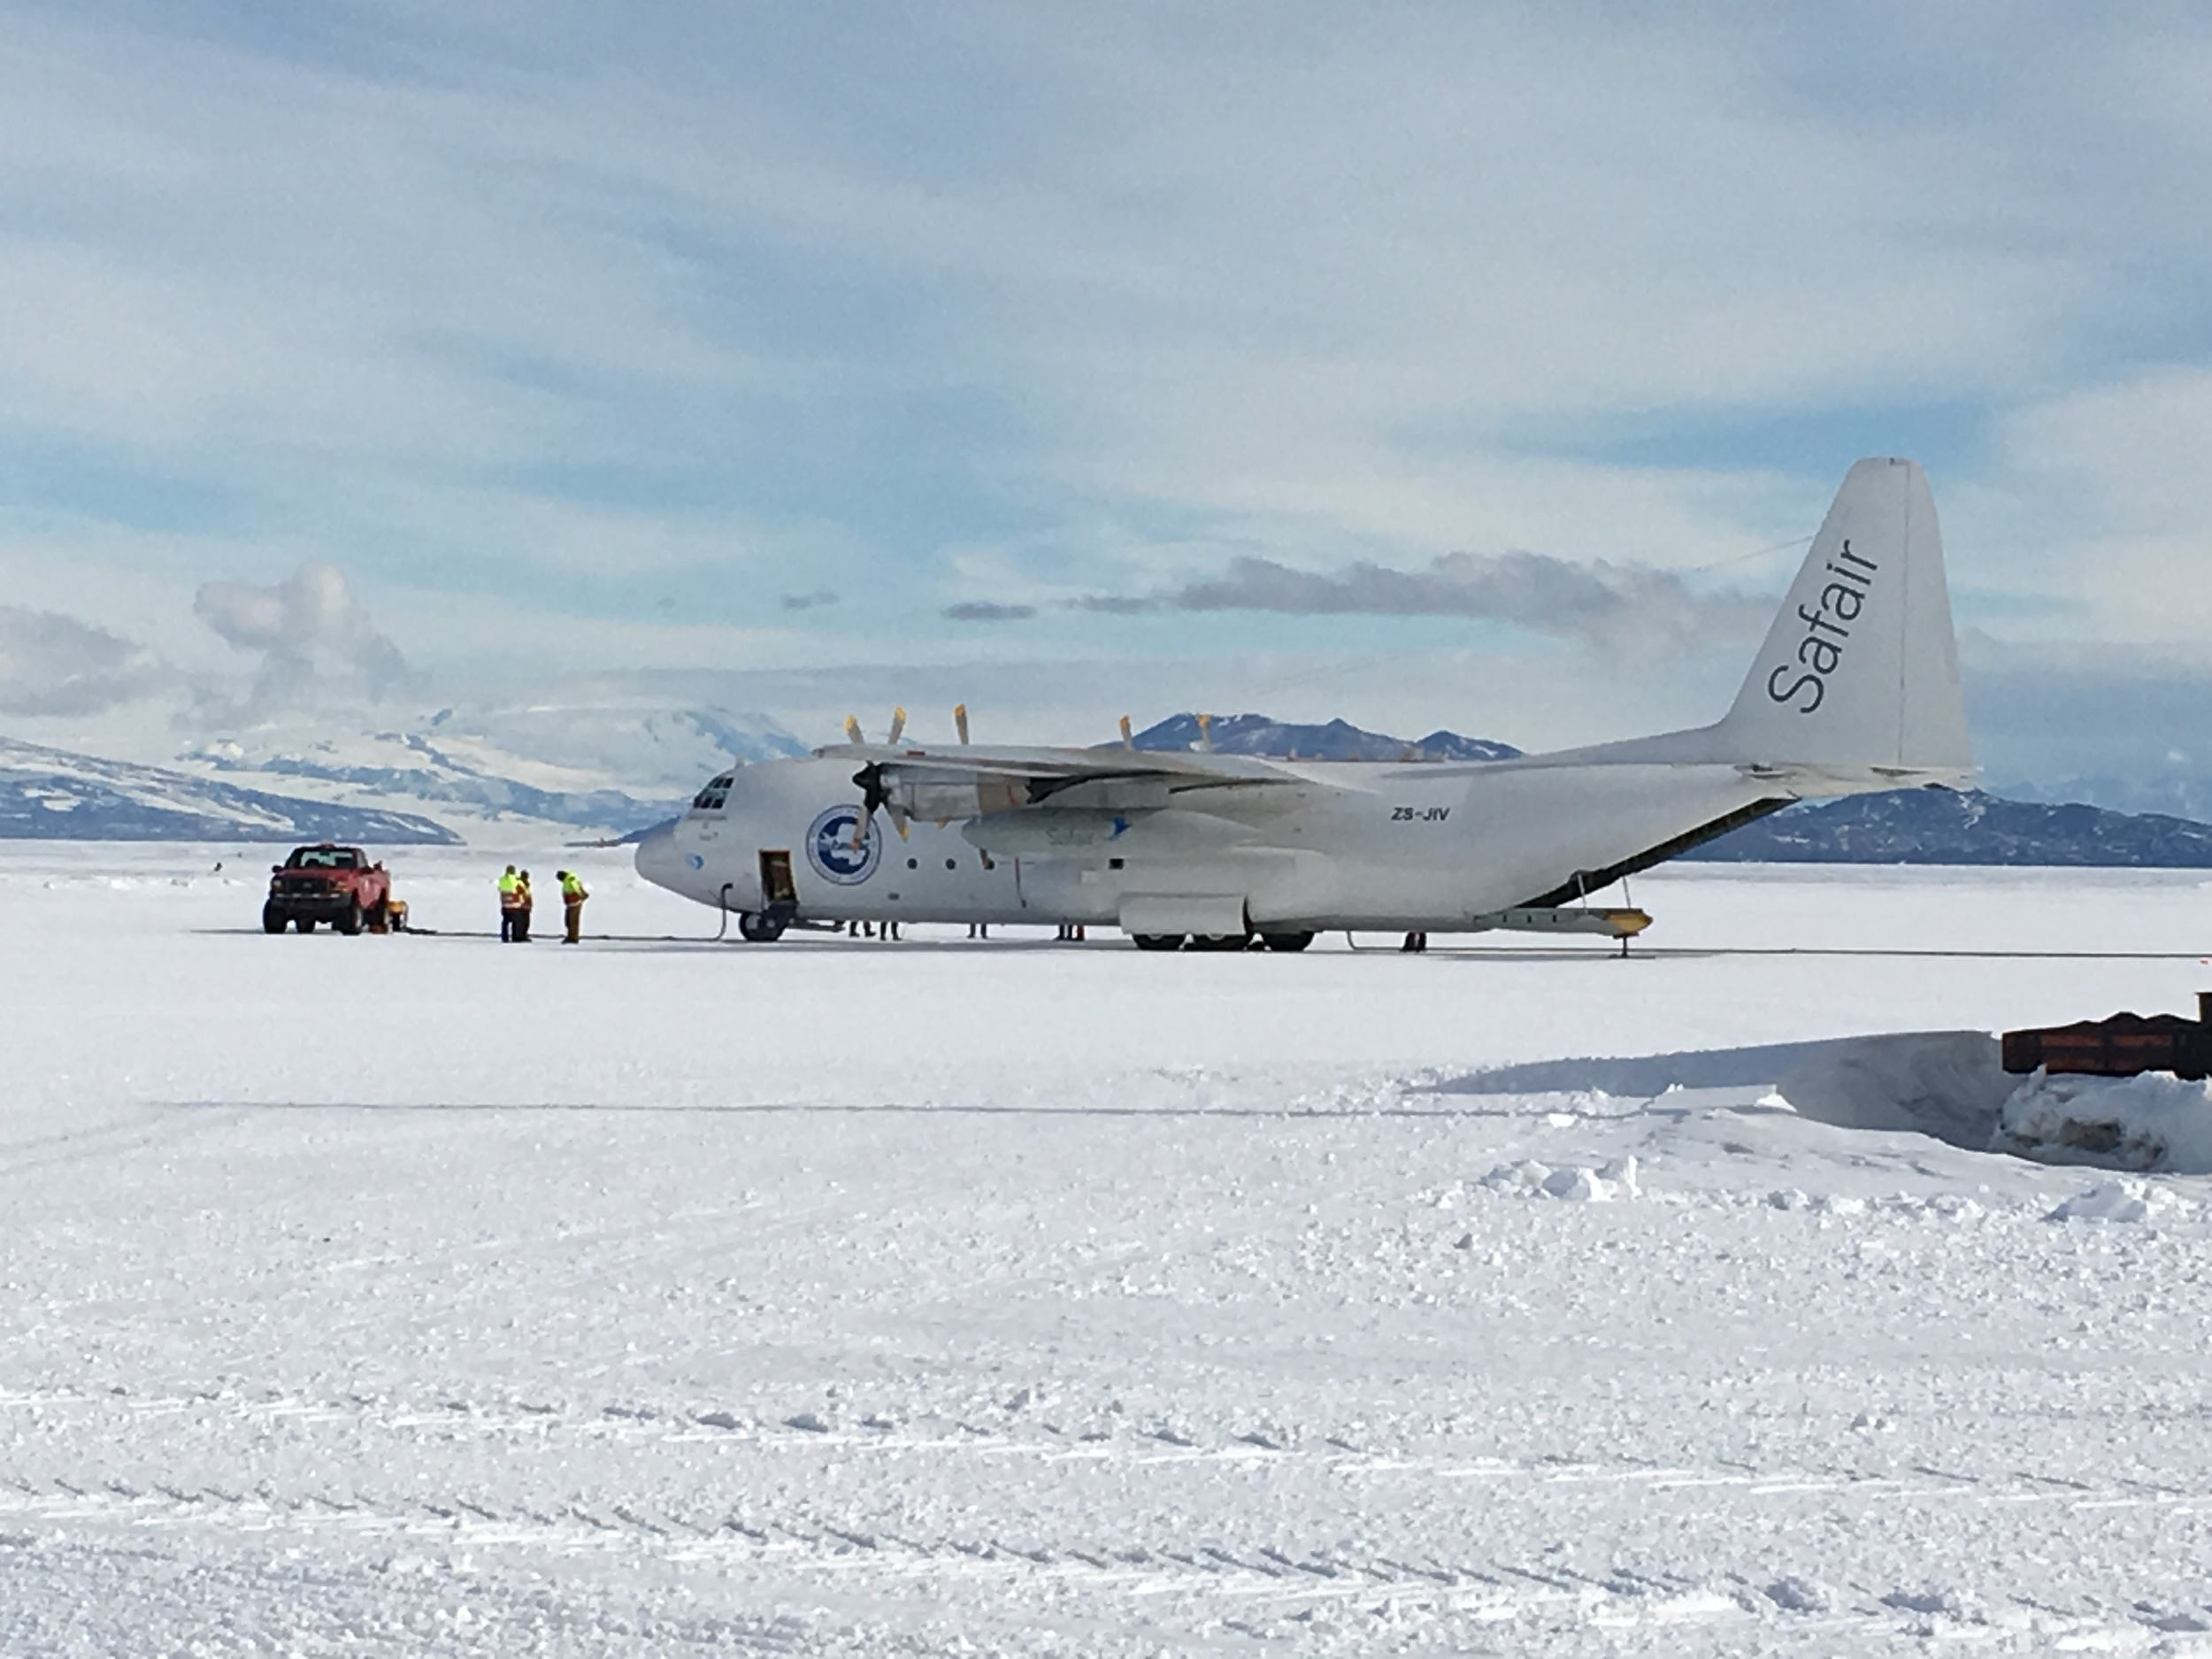 Our ride back from McMurdo to Christchurch: a Safair (South African Airlines) L-100 chartered by the Italian Antarctic Program.